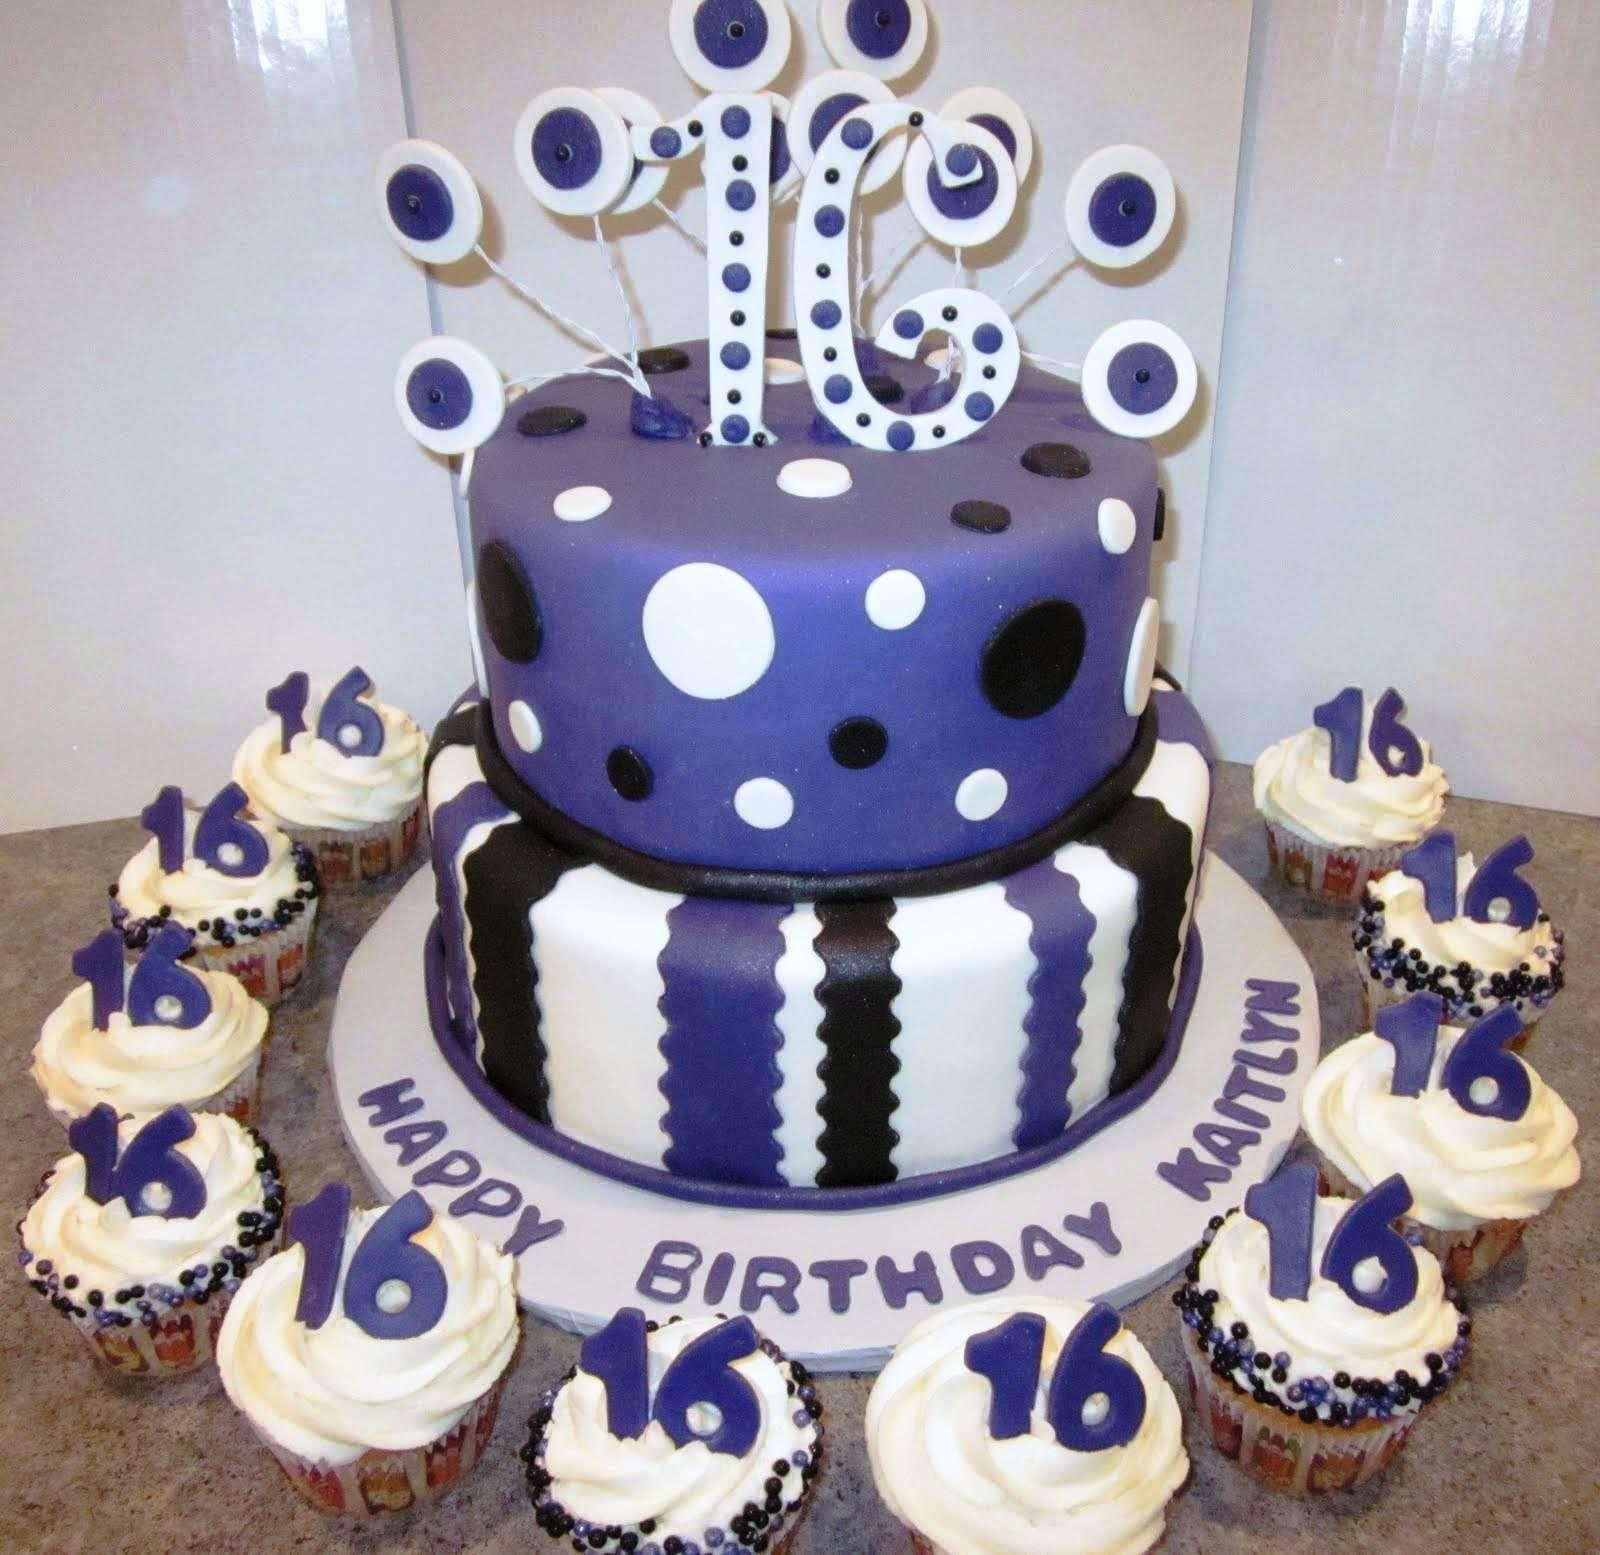 10 Perfect Good 16Th Birthday Party Ideas For Guys 16th birthday cake toppers 1600x1555 boys 16th birthday 2